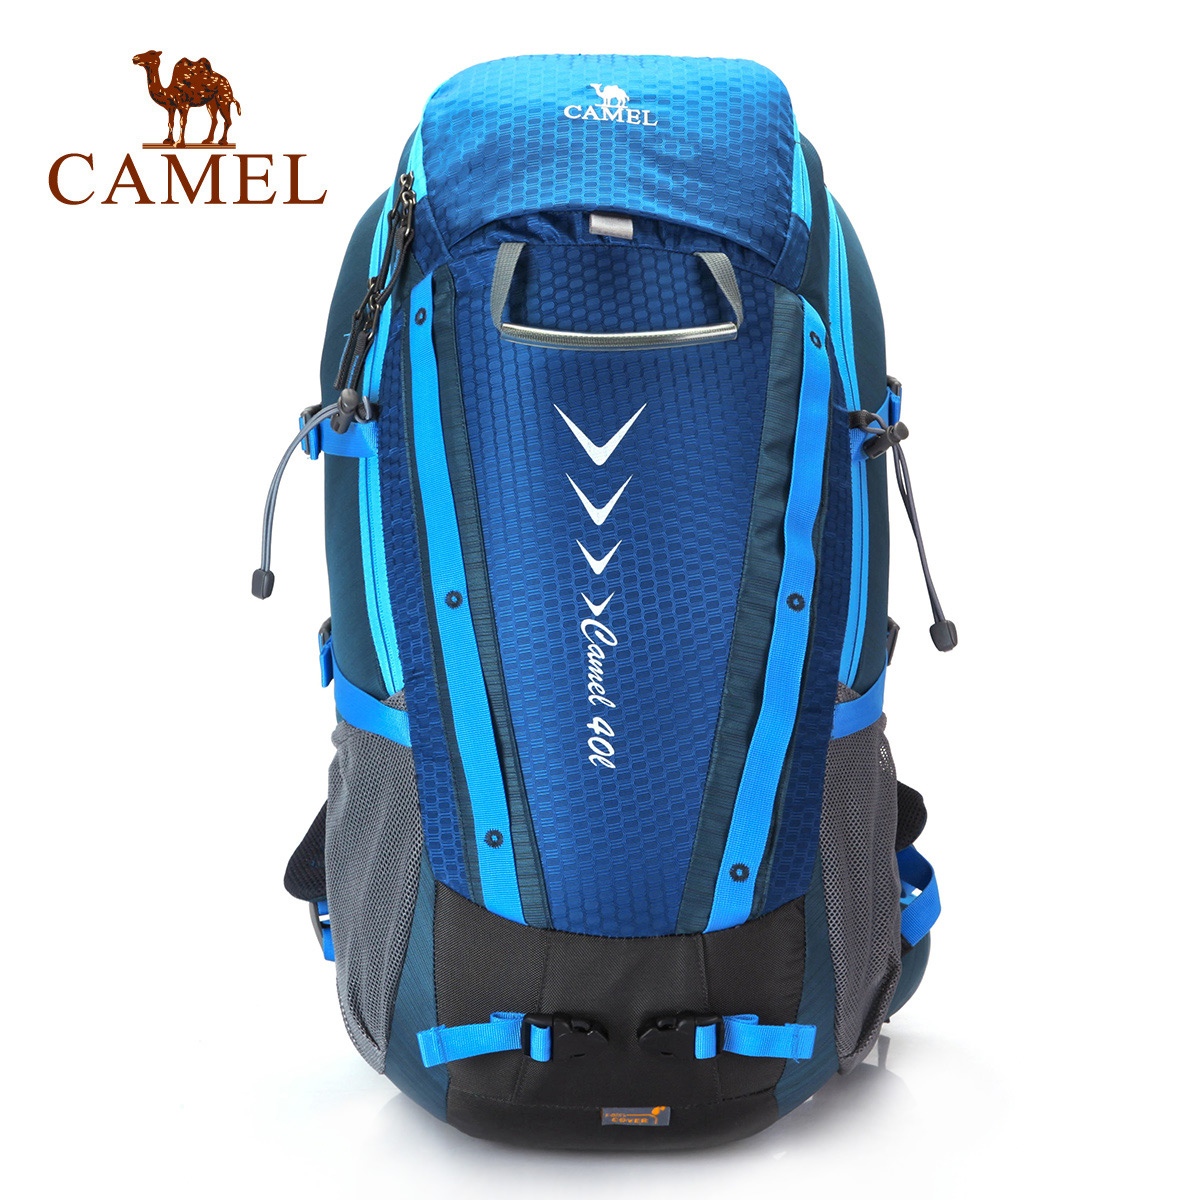 Camel camel men's outdoor hiking backpack travel bag men and women outdoor mountaineering bag large capacity